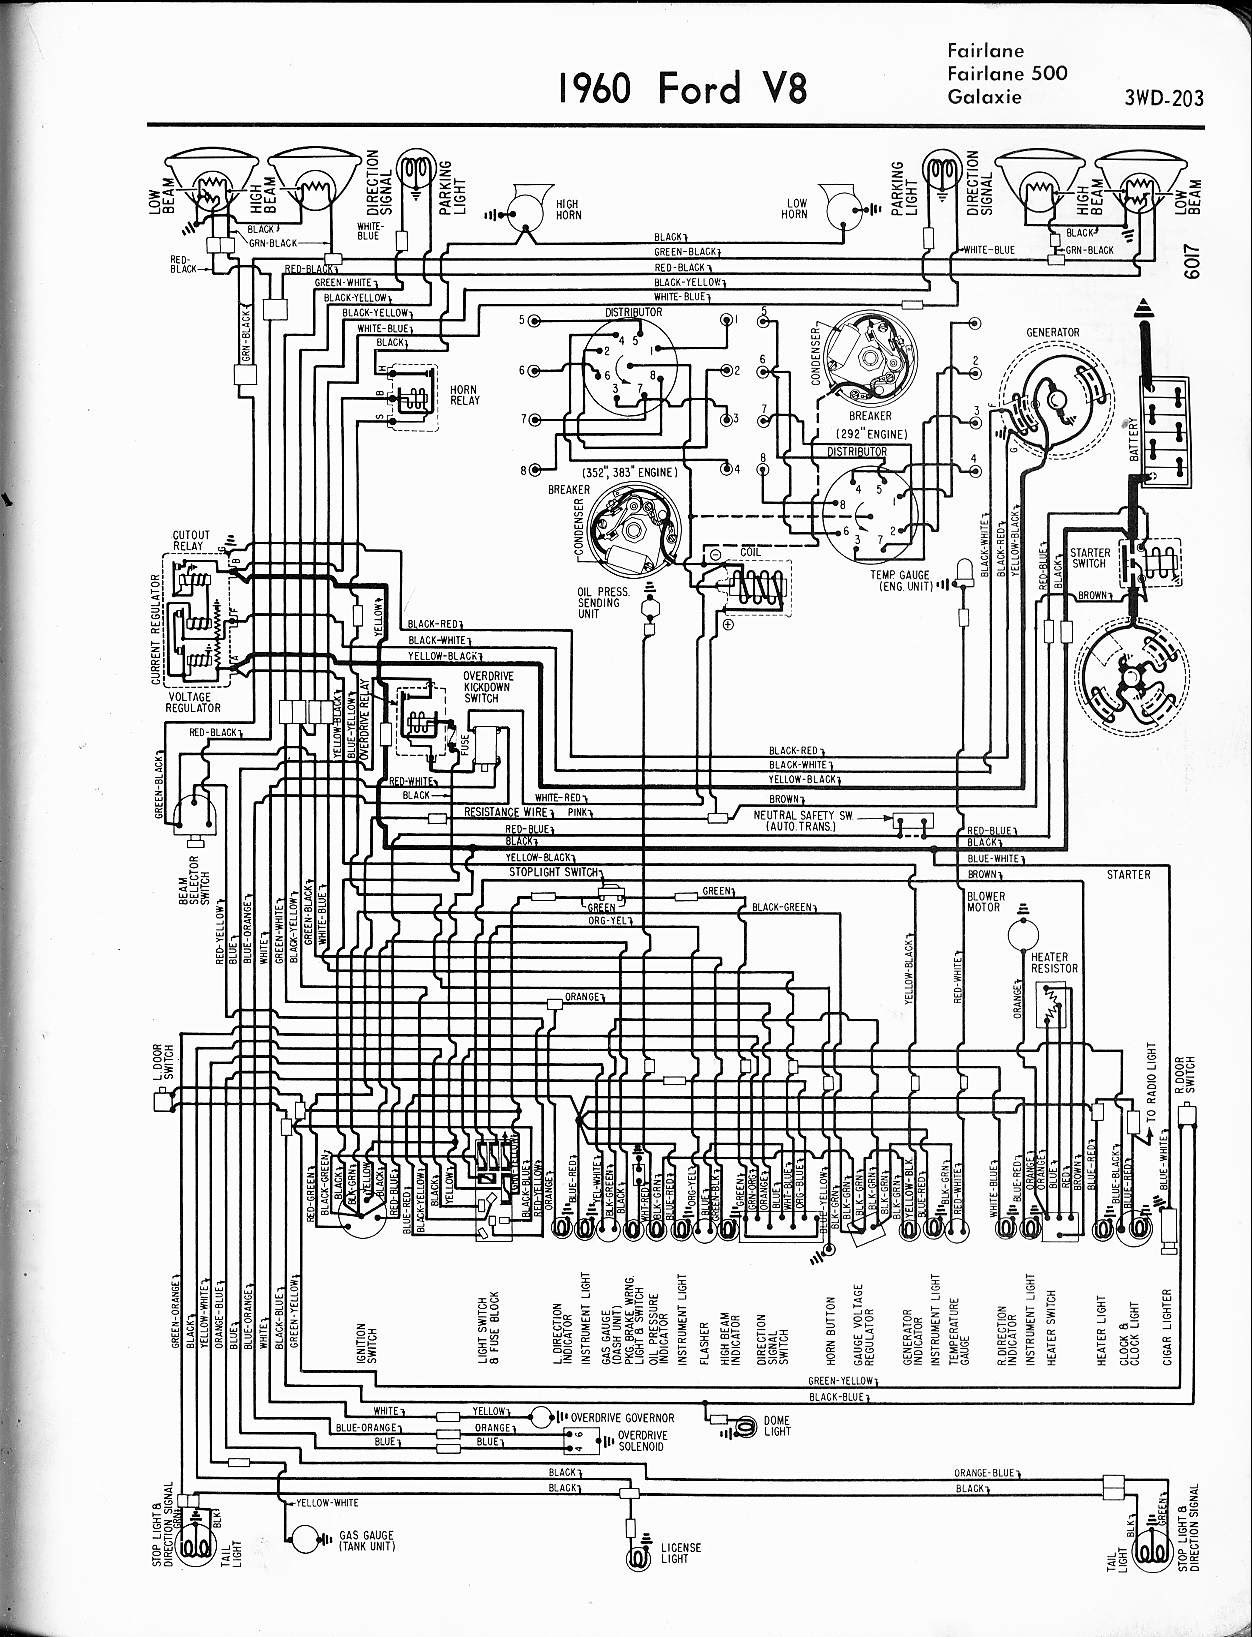 1955 Ford F100 Wiring Diagram Wiring Diagram Motor Motor Frankmotors Es